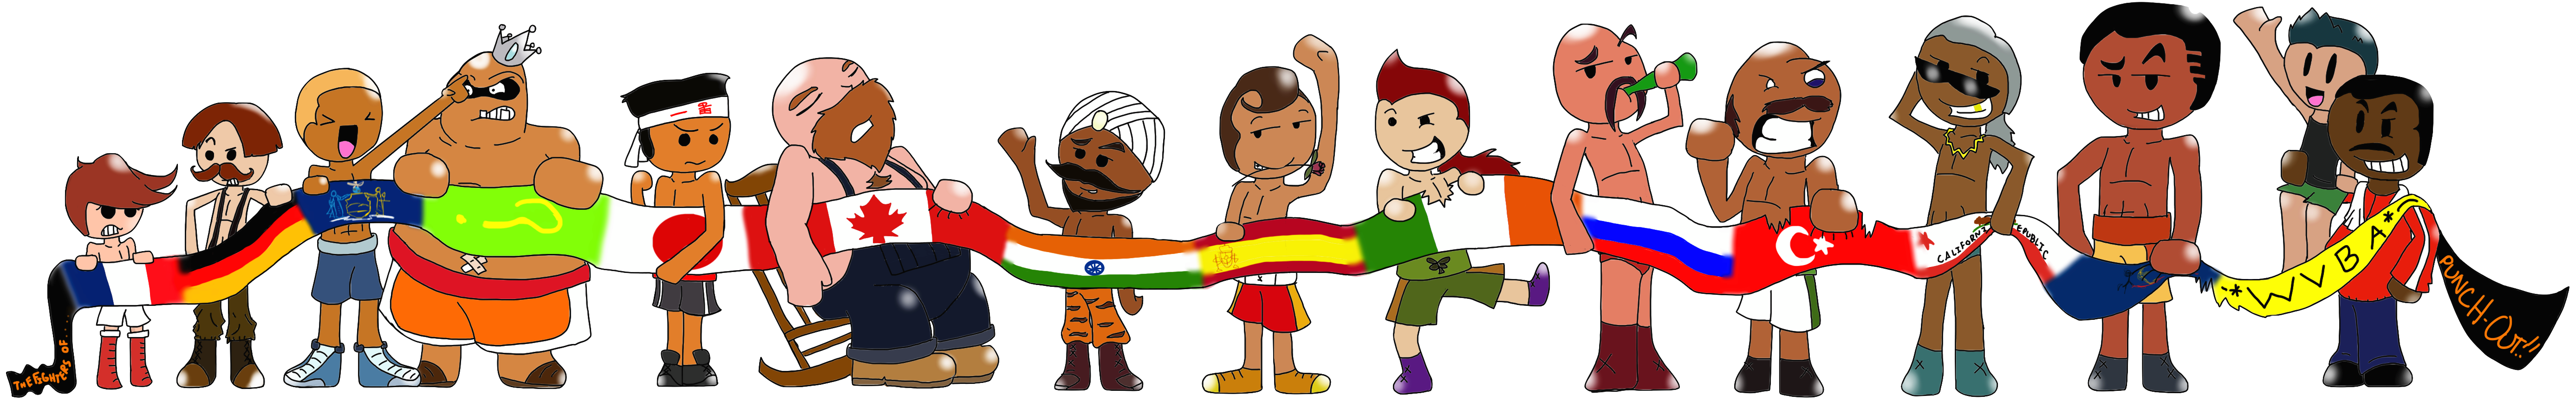 The Fighters Of Punch-Out!! by iMetaKnight